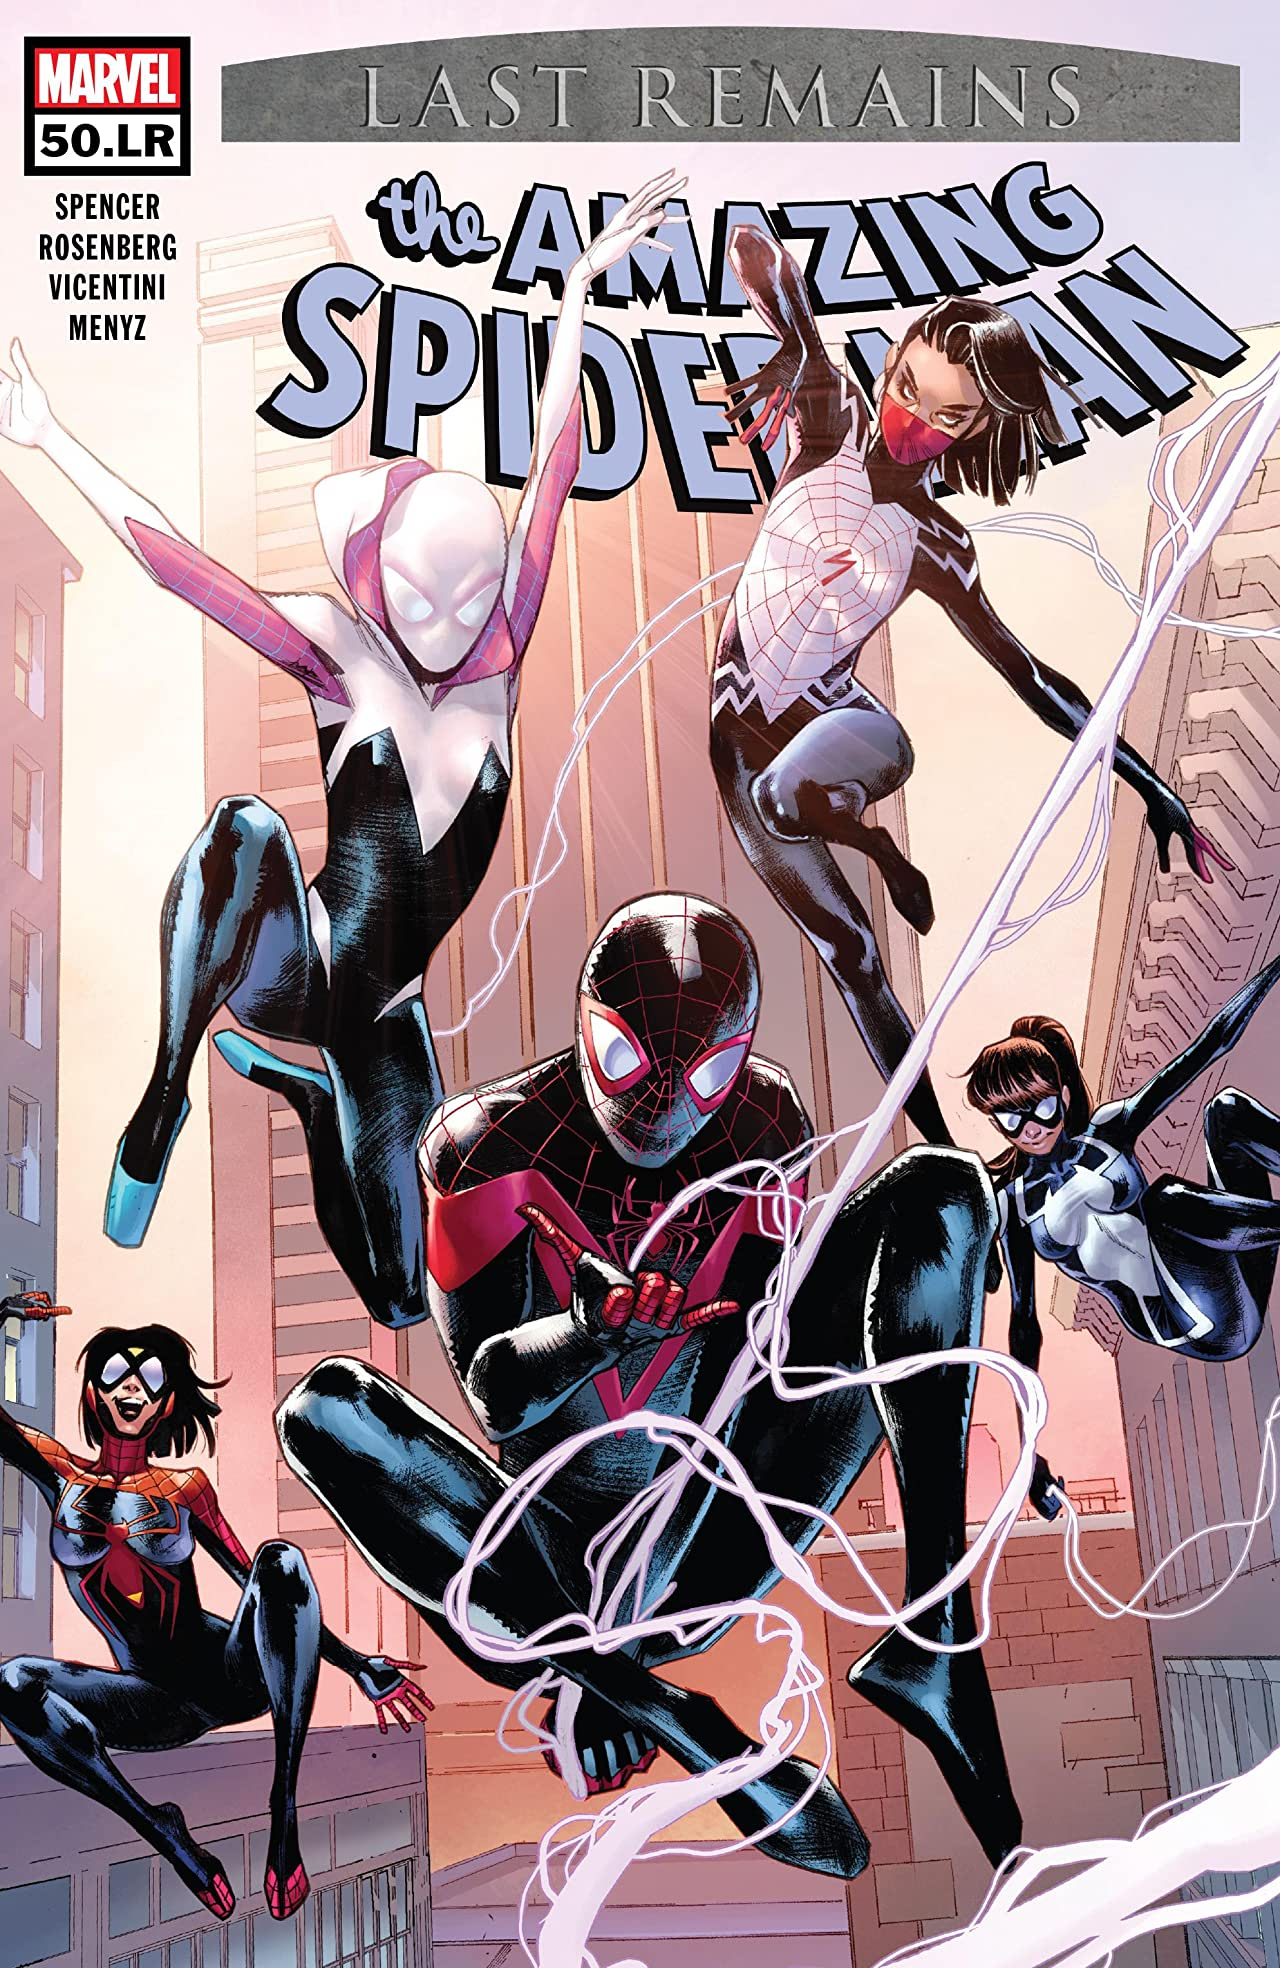 Amazing Spider-Man #50.LR preview